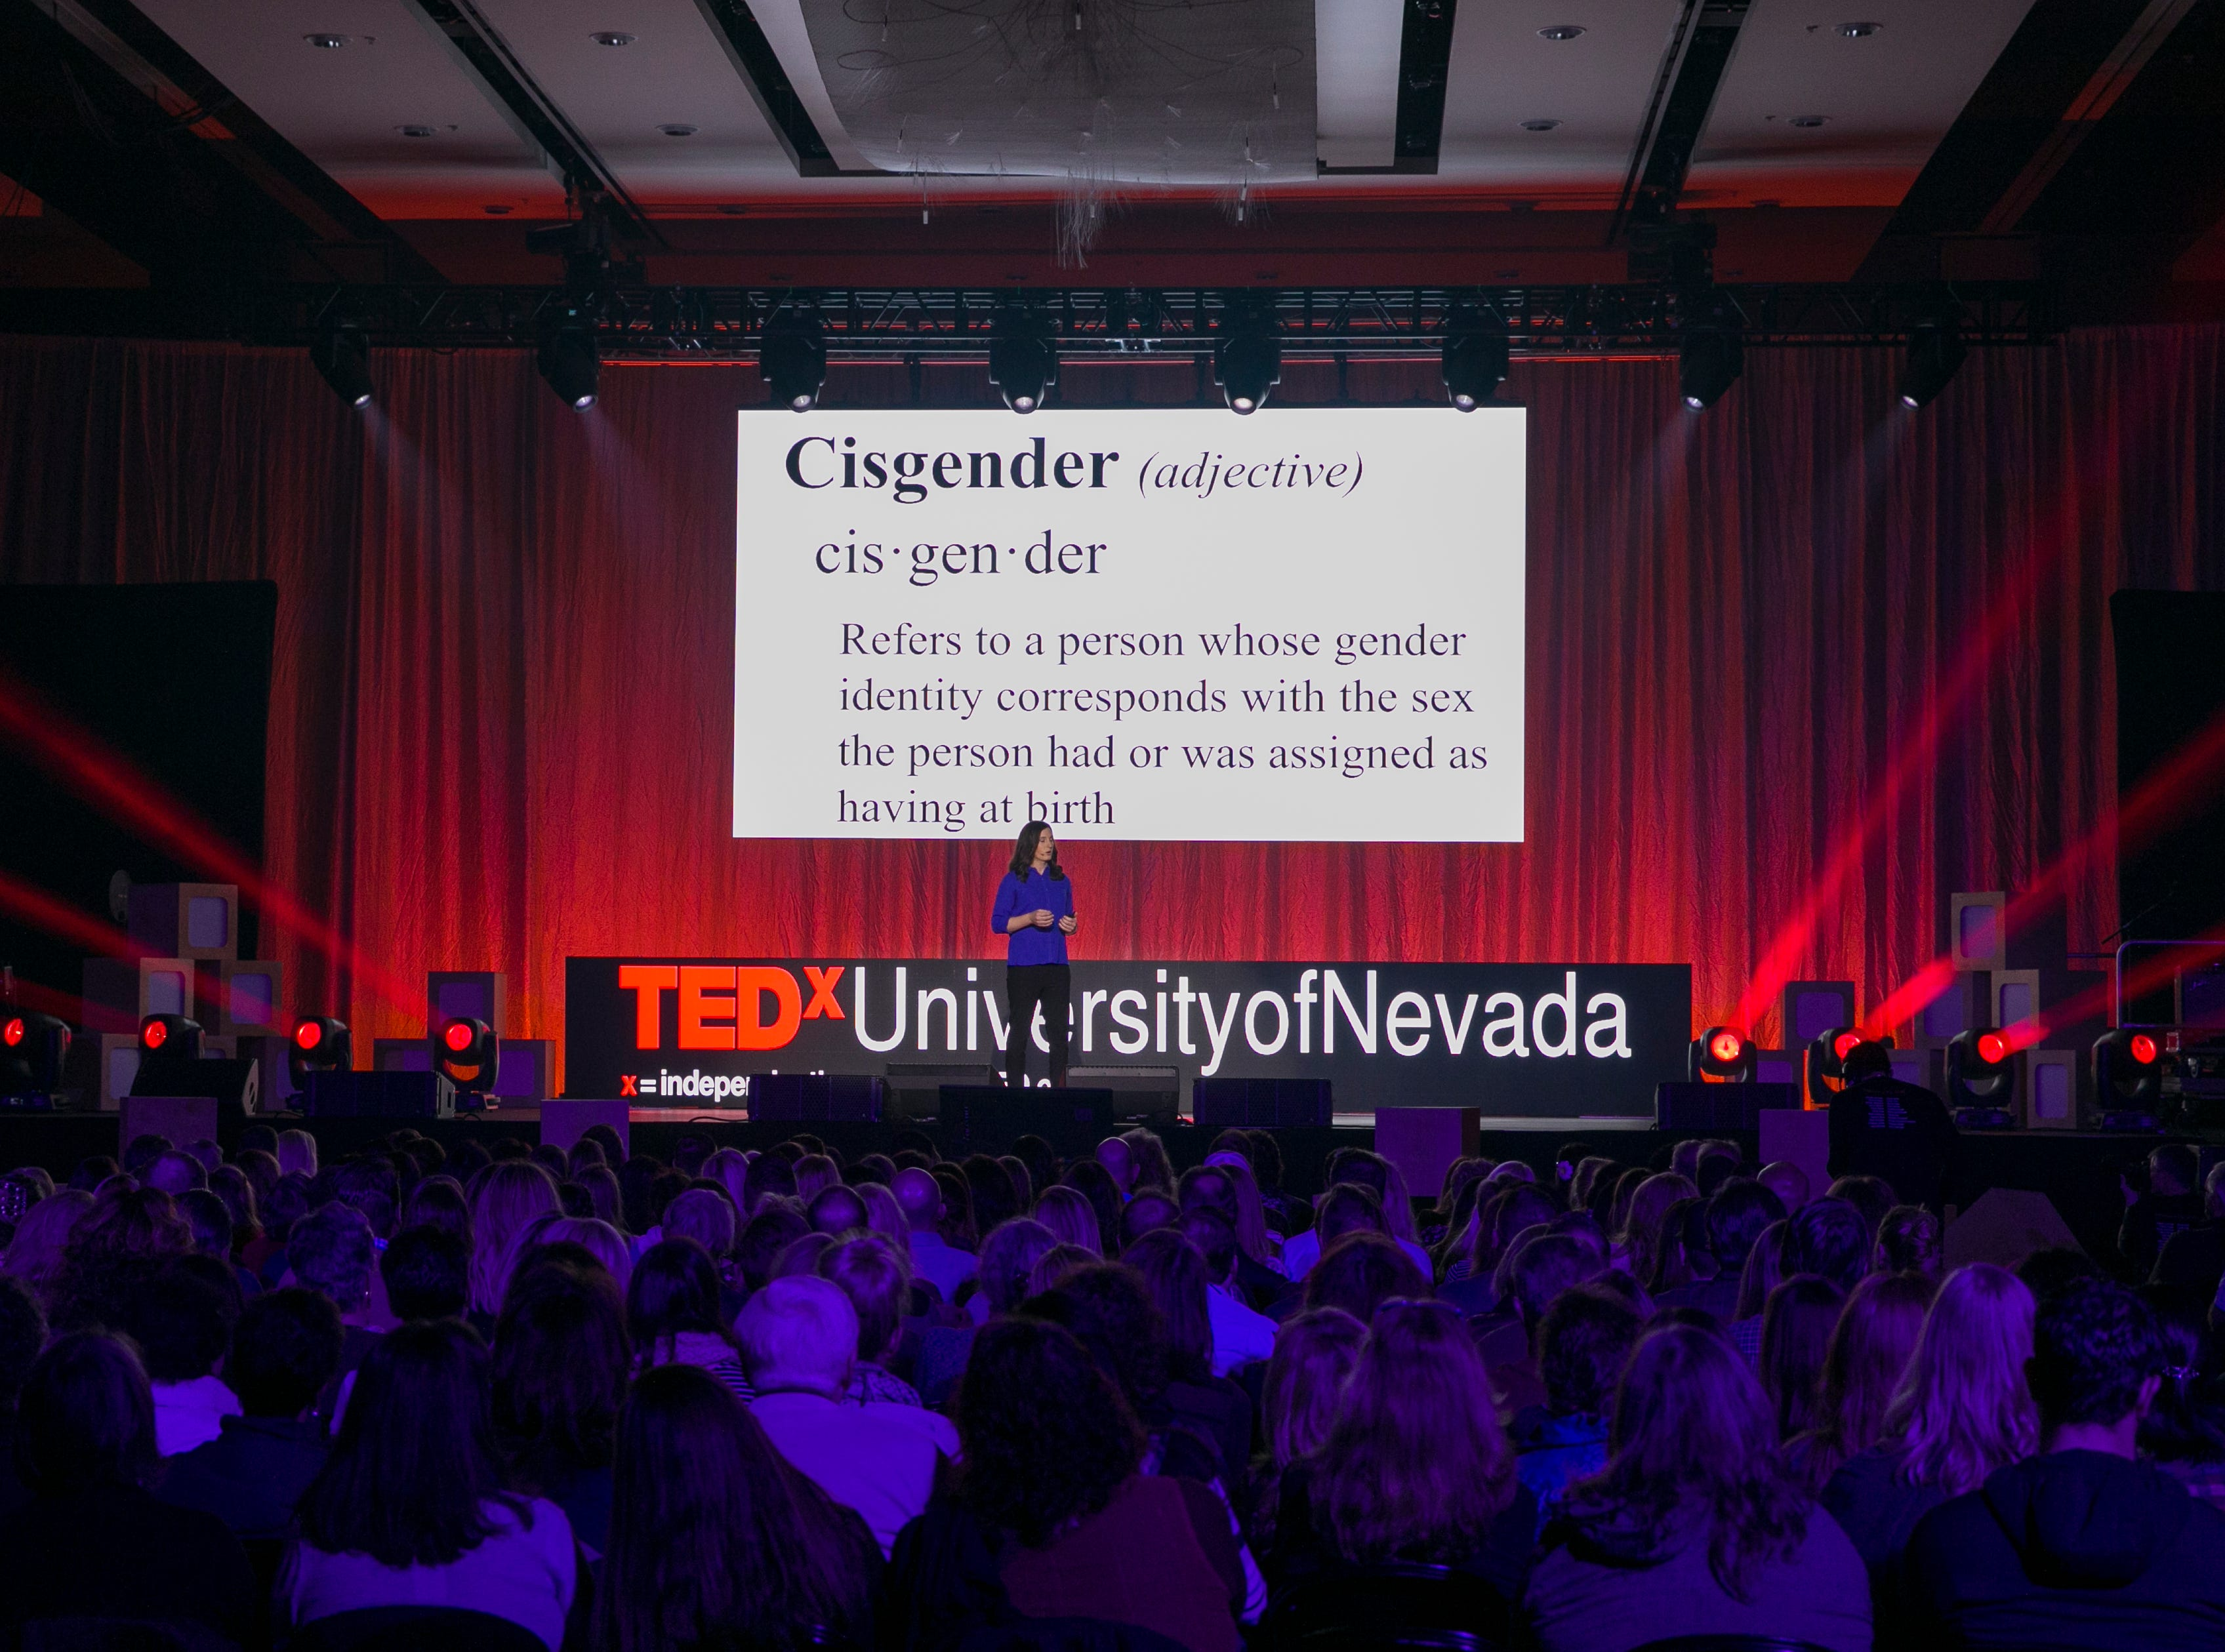 Jenna Weiner speaks during TEDx University of Nevada 2019 at the Reno-Sparks Convention Center on Saturday, Feb. 23, 2019.